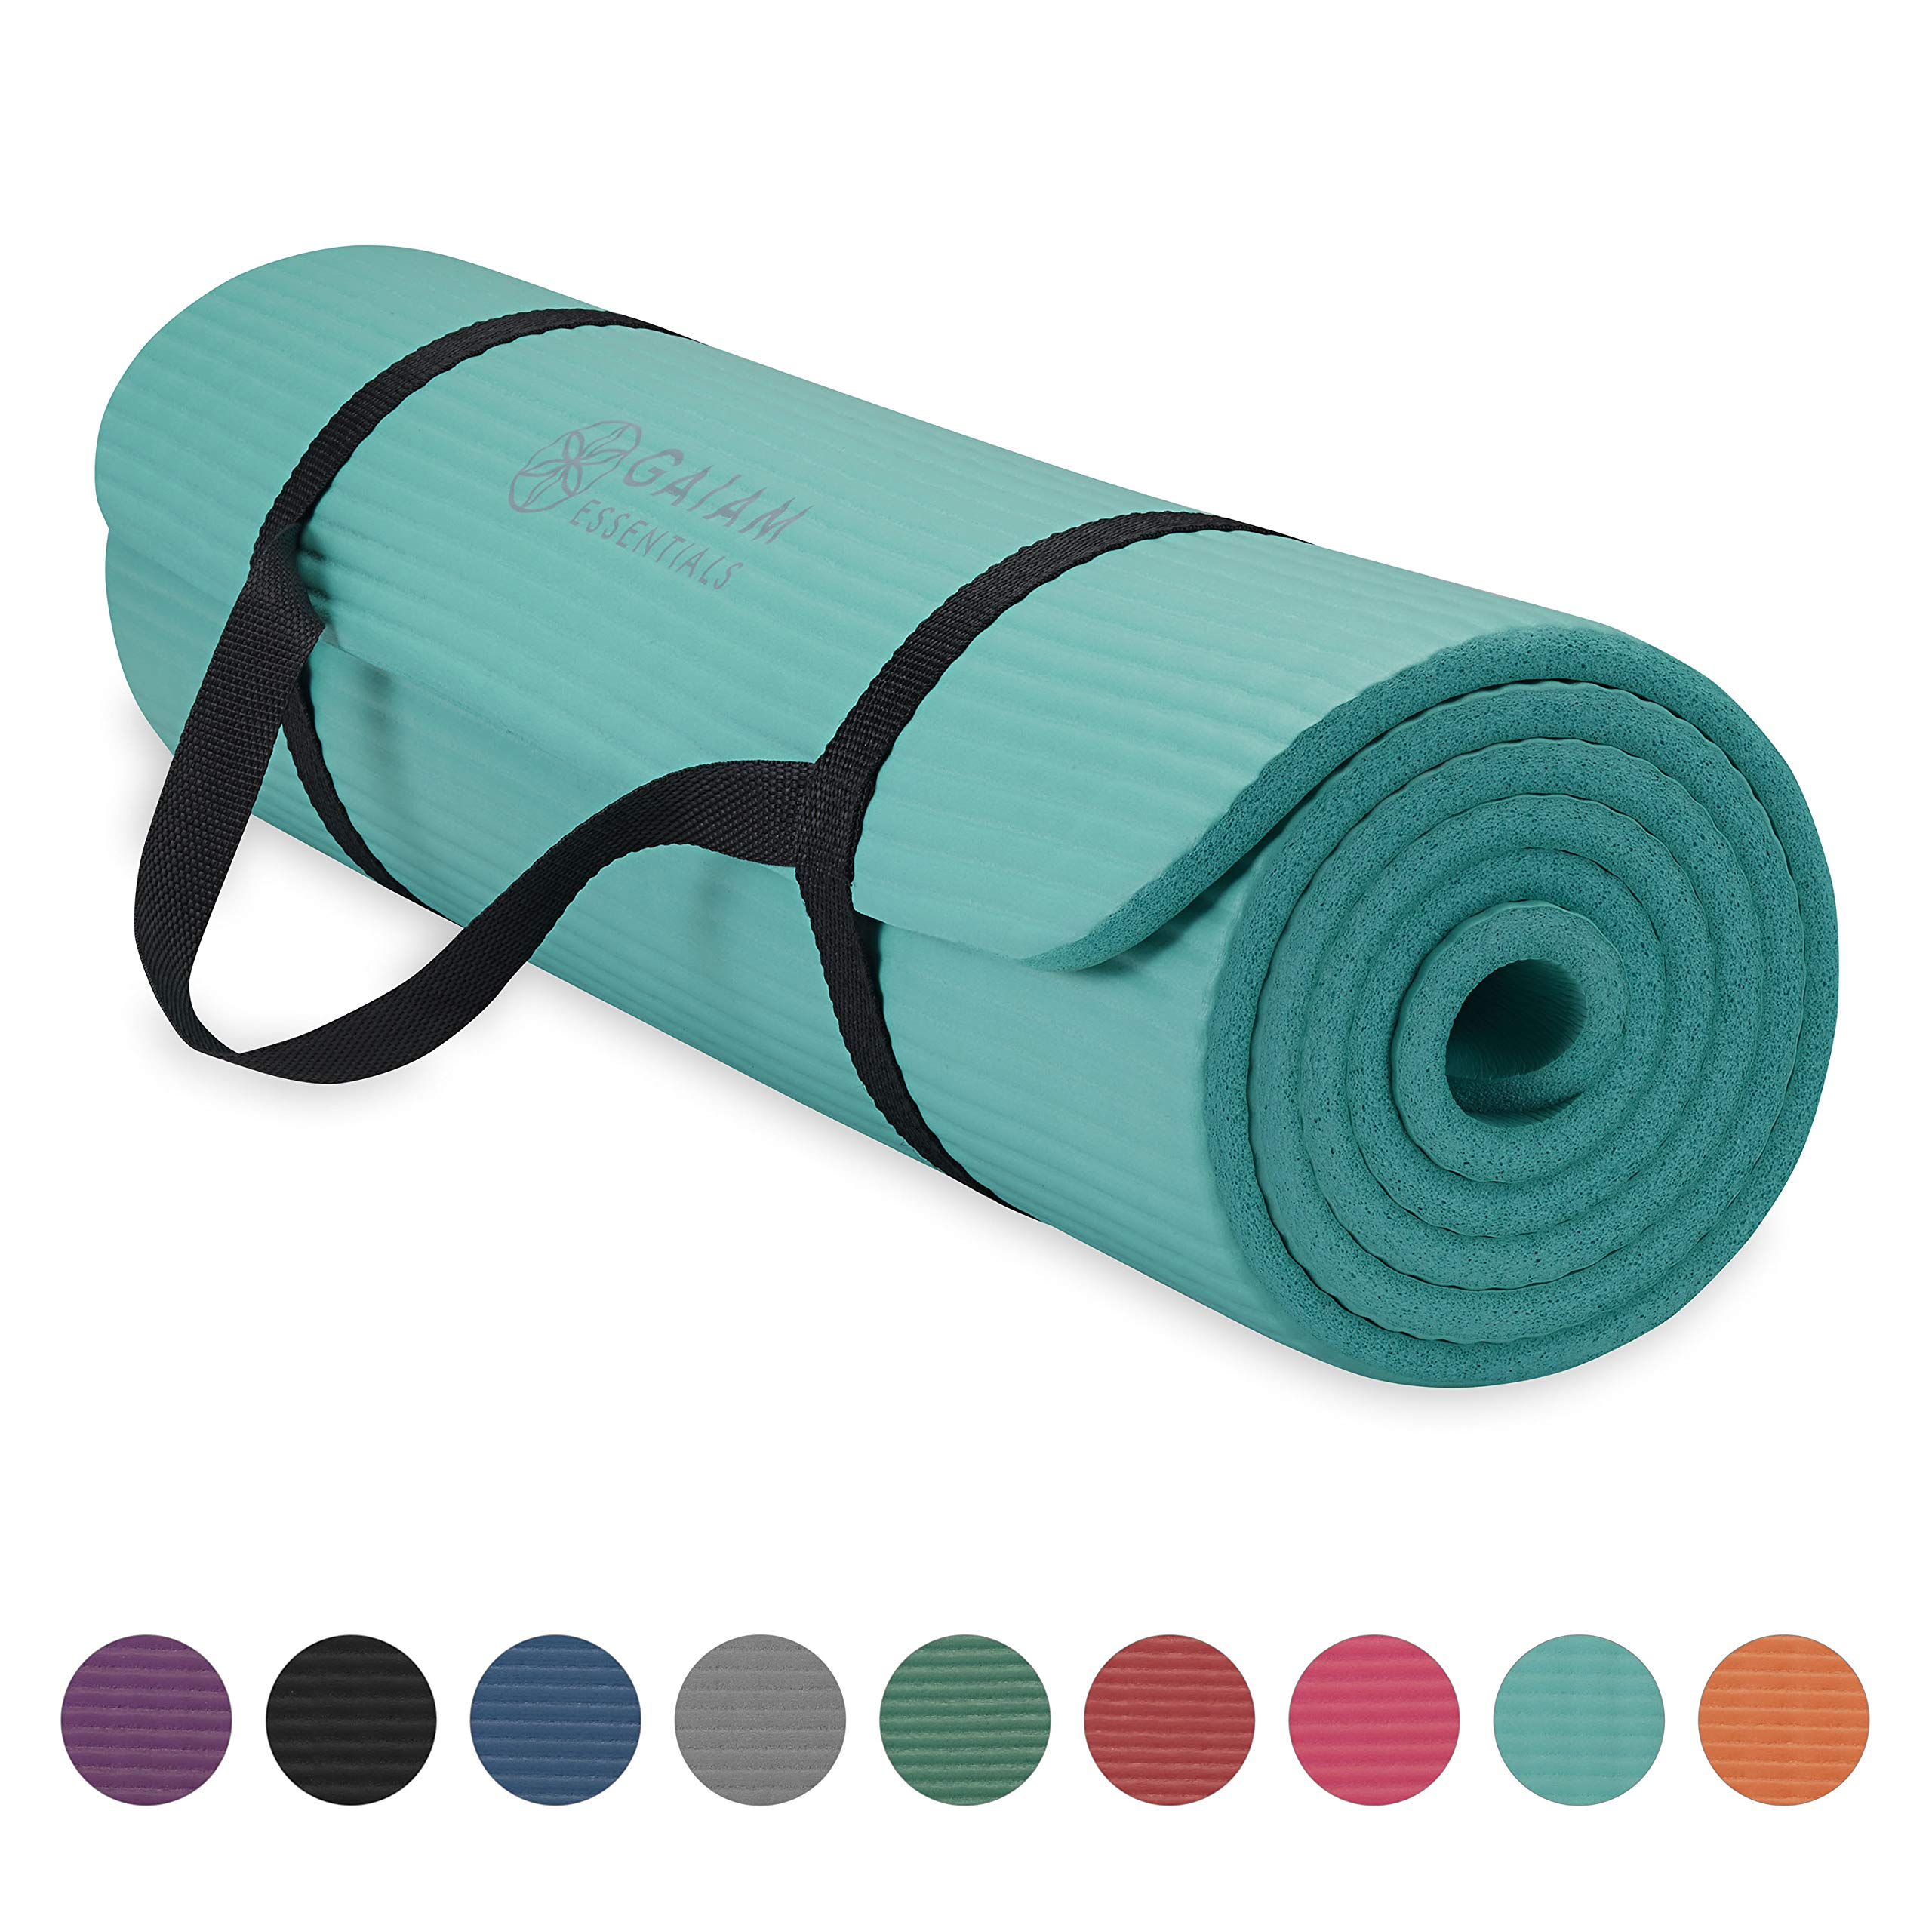 Gaiam Essentials Thick Yoga Mat Fitness & Exercise Mat with Easy-Cinch Yoga Mat Carrier Strap, Teal, 72''L x 24''W x 2/5 Inch Thick